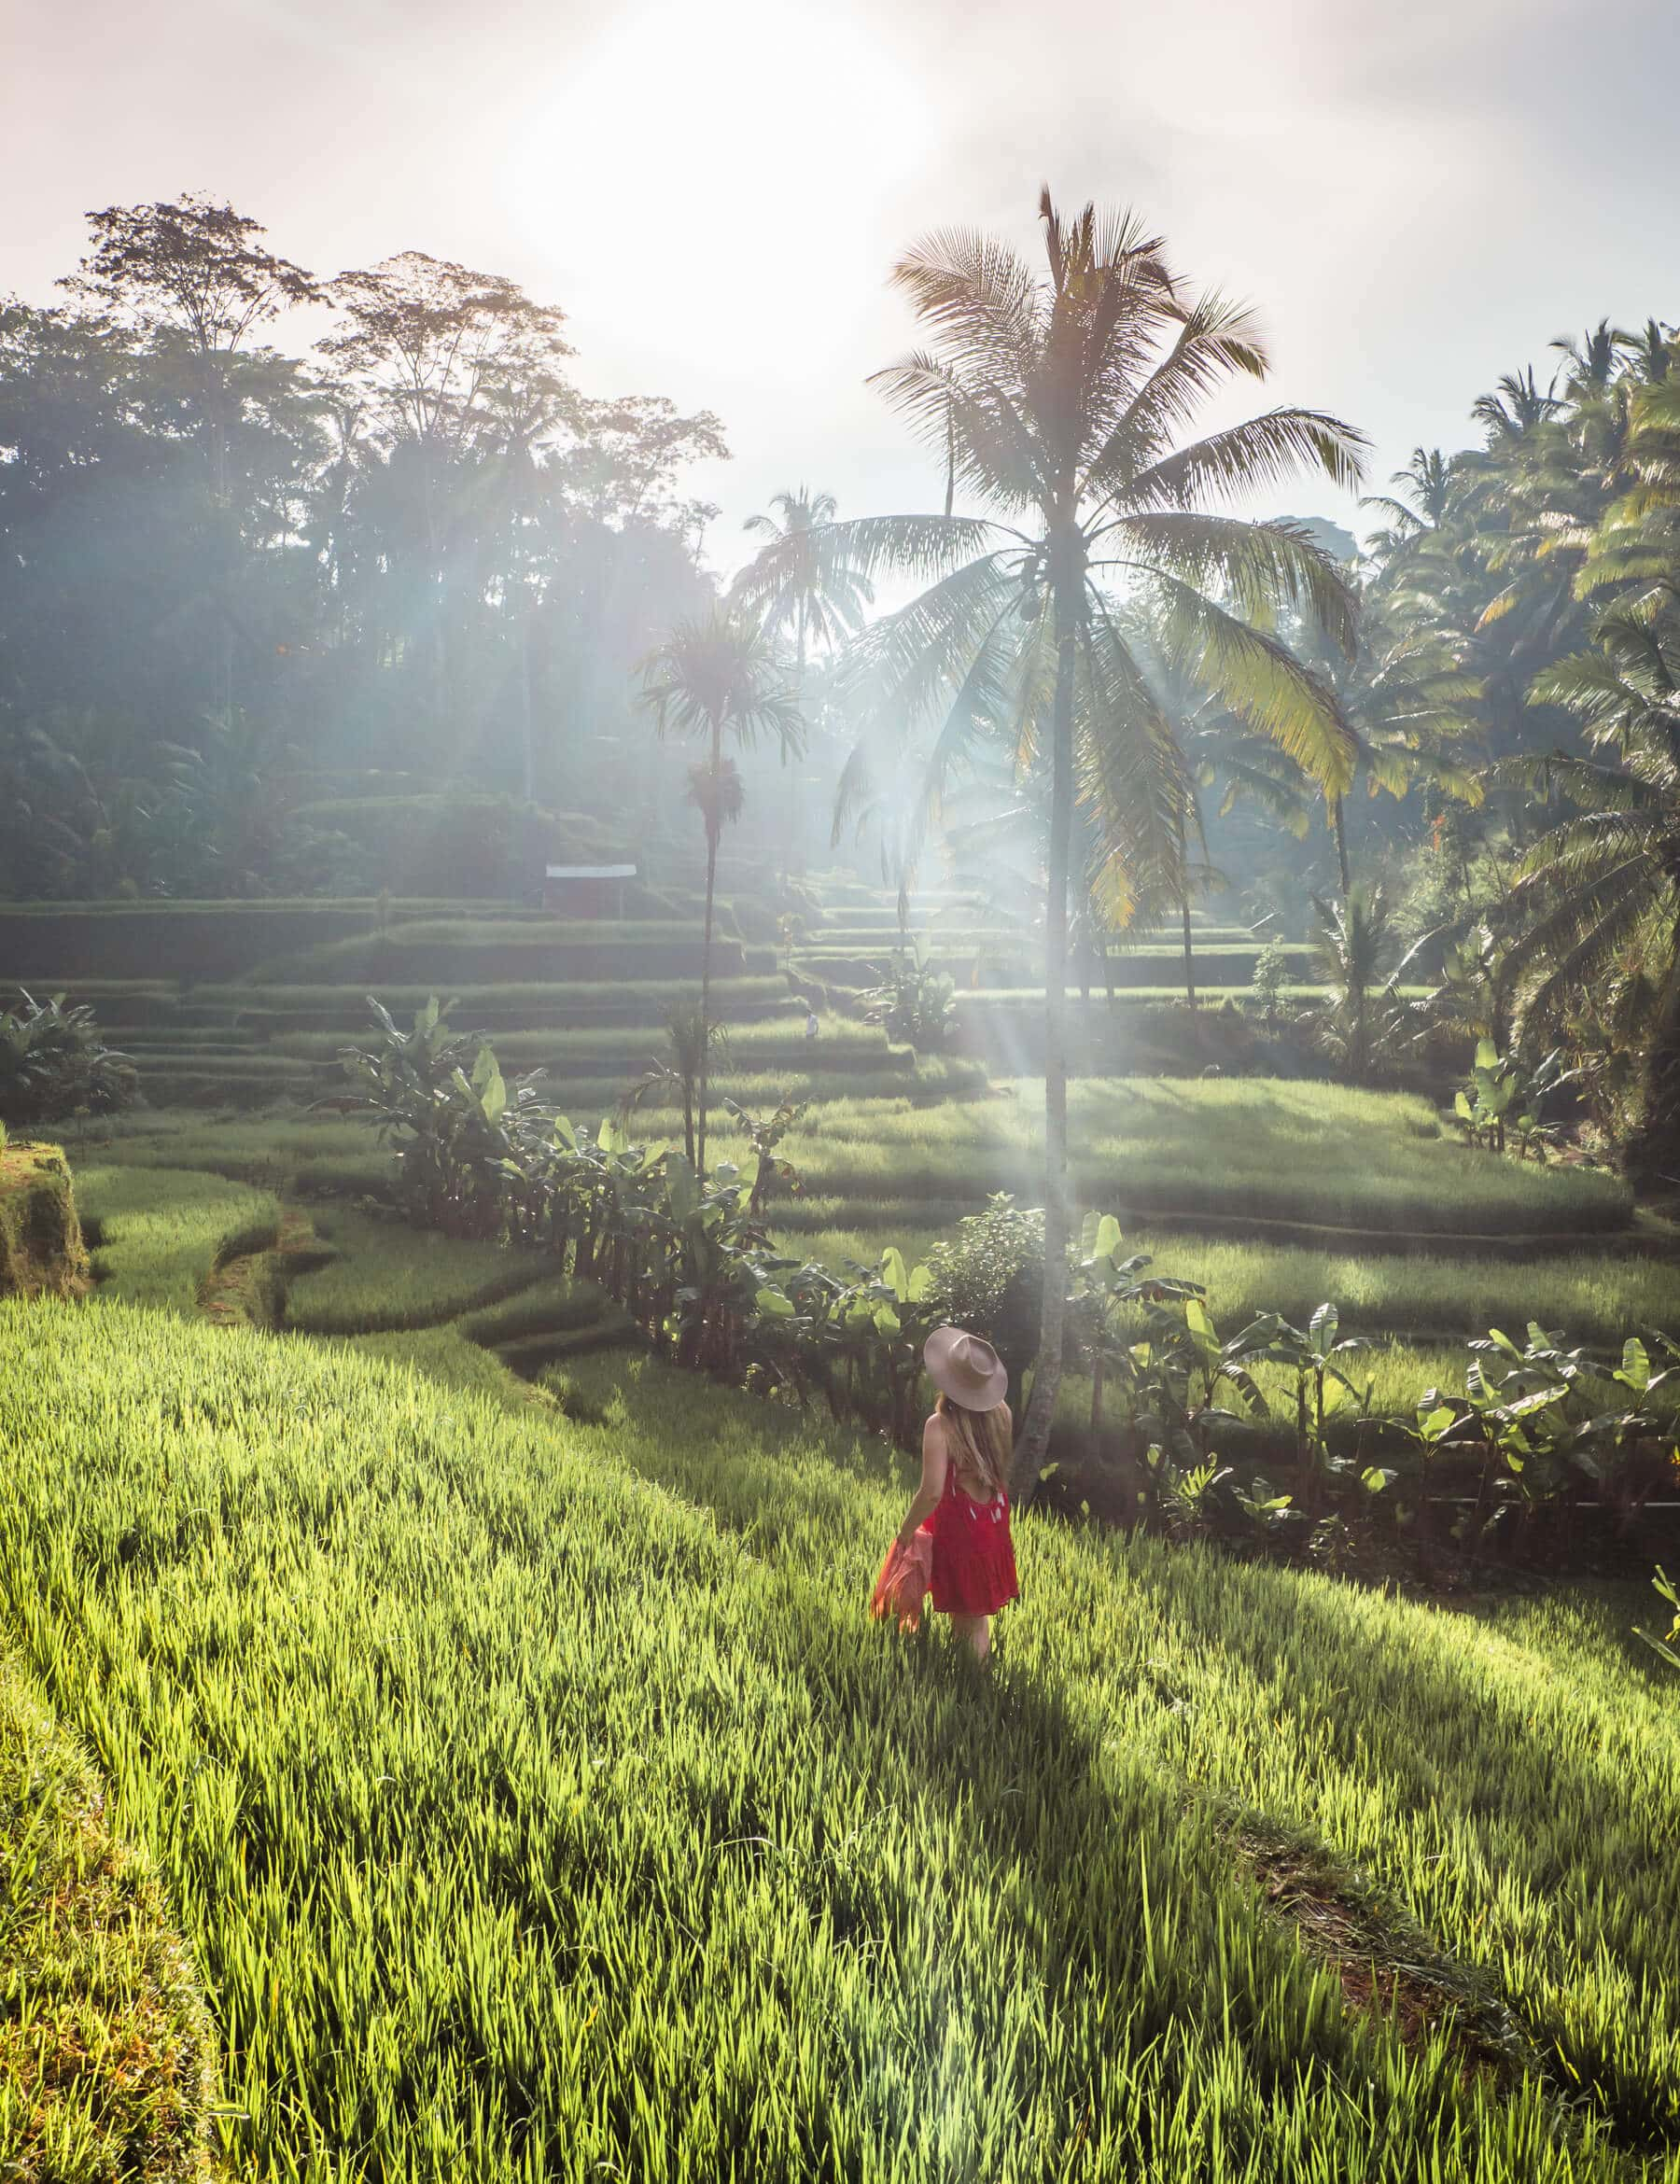 Island Life #4 - Early morning in Tegalalang Rice Terrace in Ubud